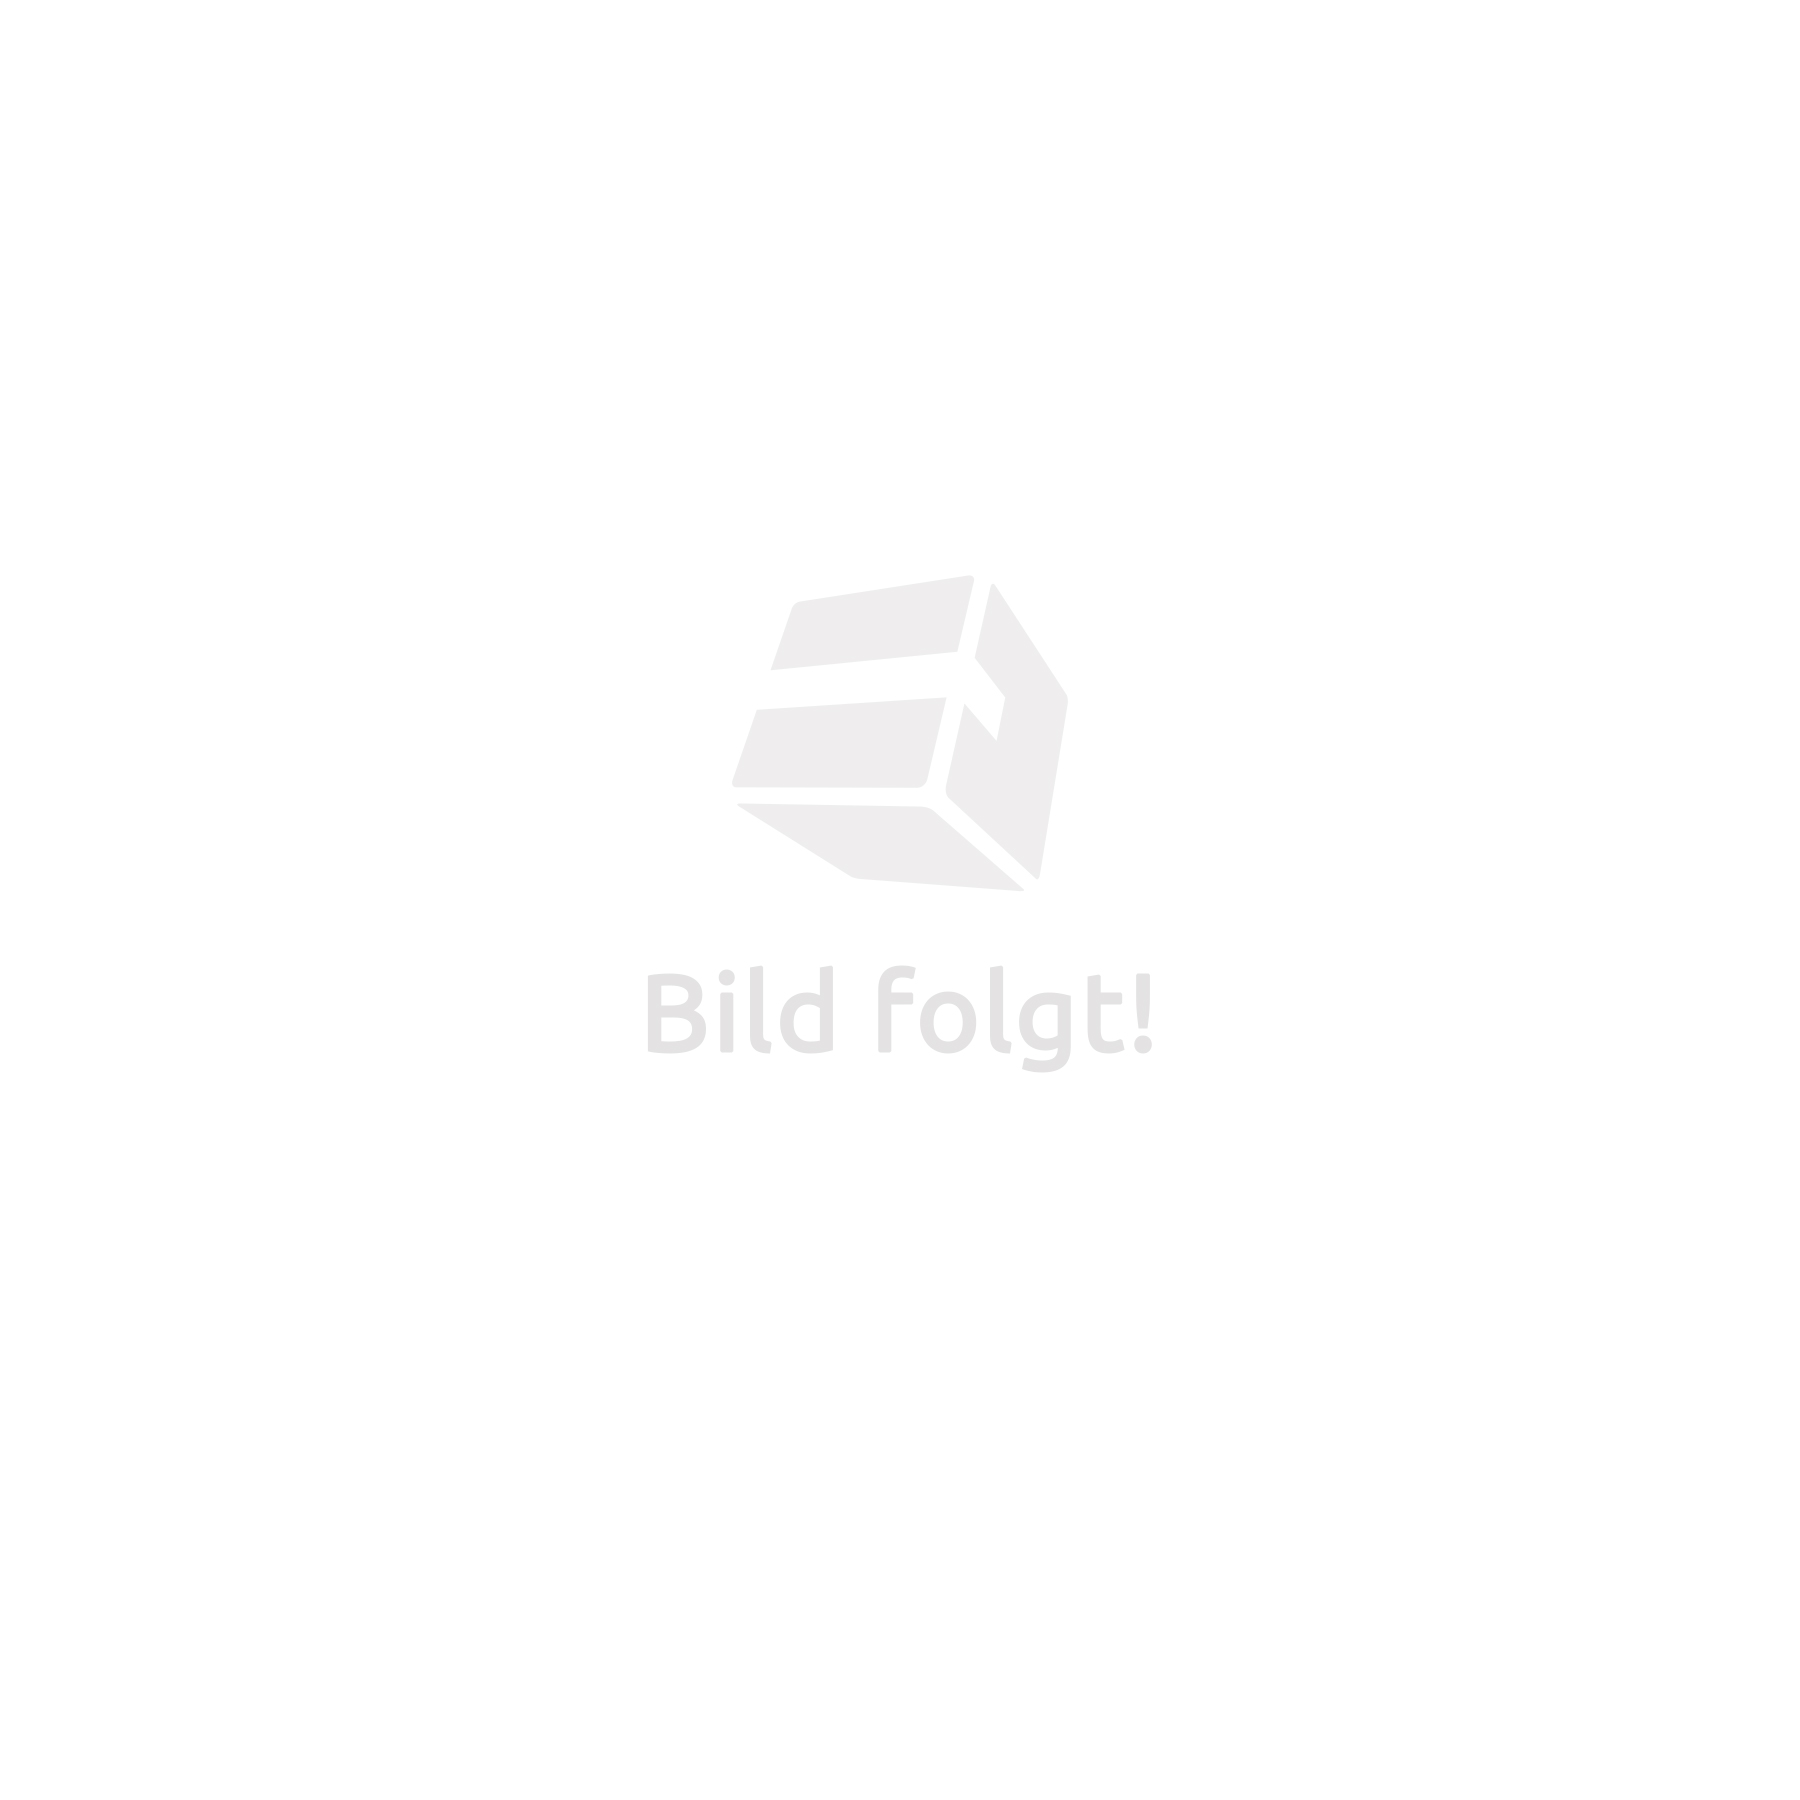 Shower panel SF-8600 rain shower